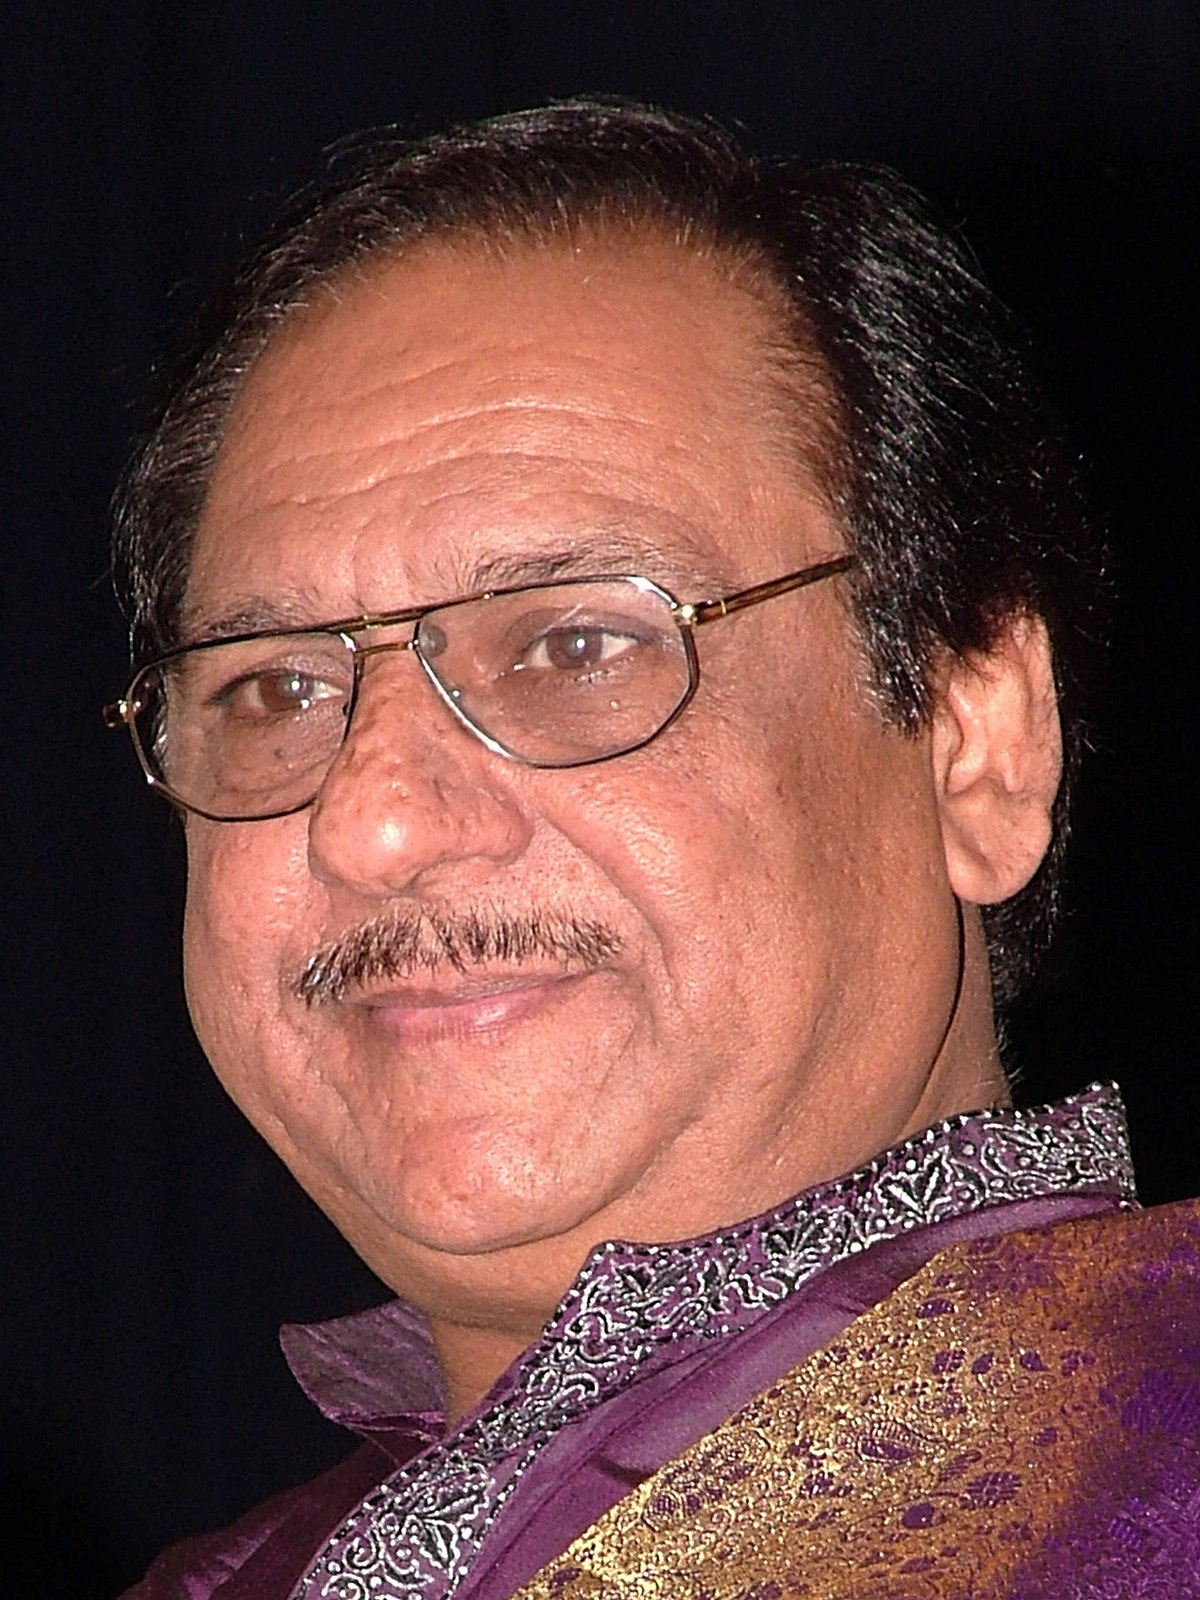 Best of Ghulam Ali His 50 Greatest Ghazal Hits by Ghulam Ali on Spotify